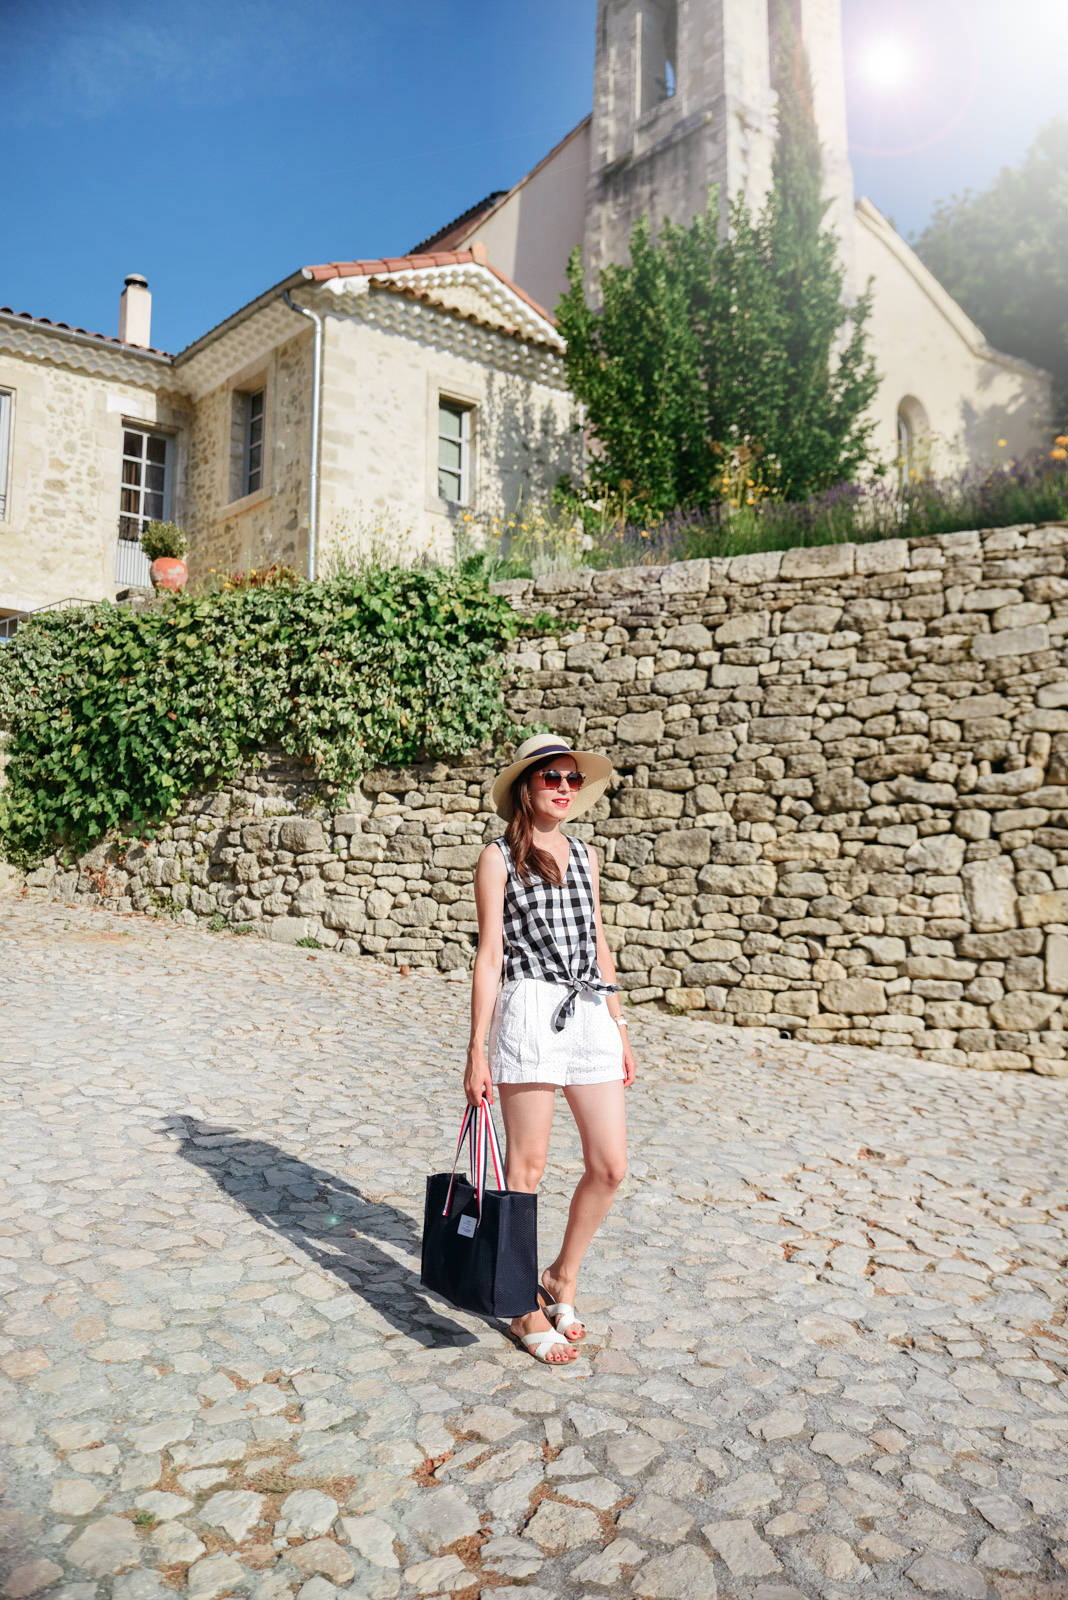 Blog-Mode-And-The-City-Lifestyle-Provence-Couvent-Minimes-Manosque-Fourcalquier-3